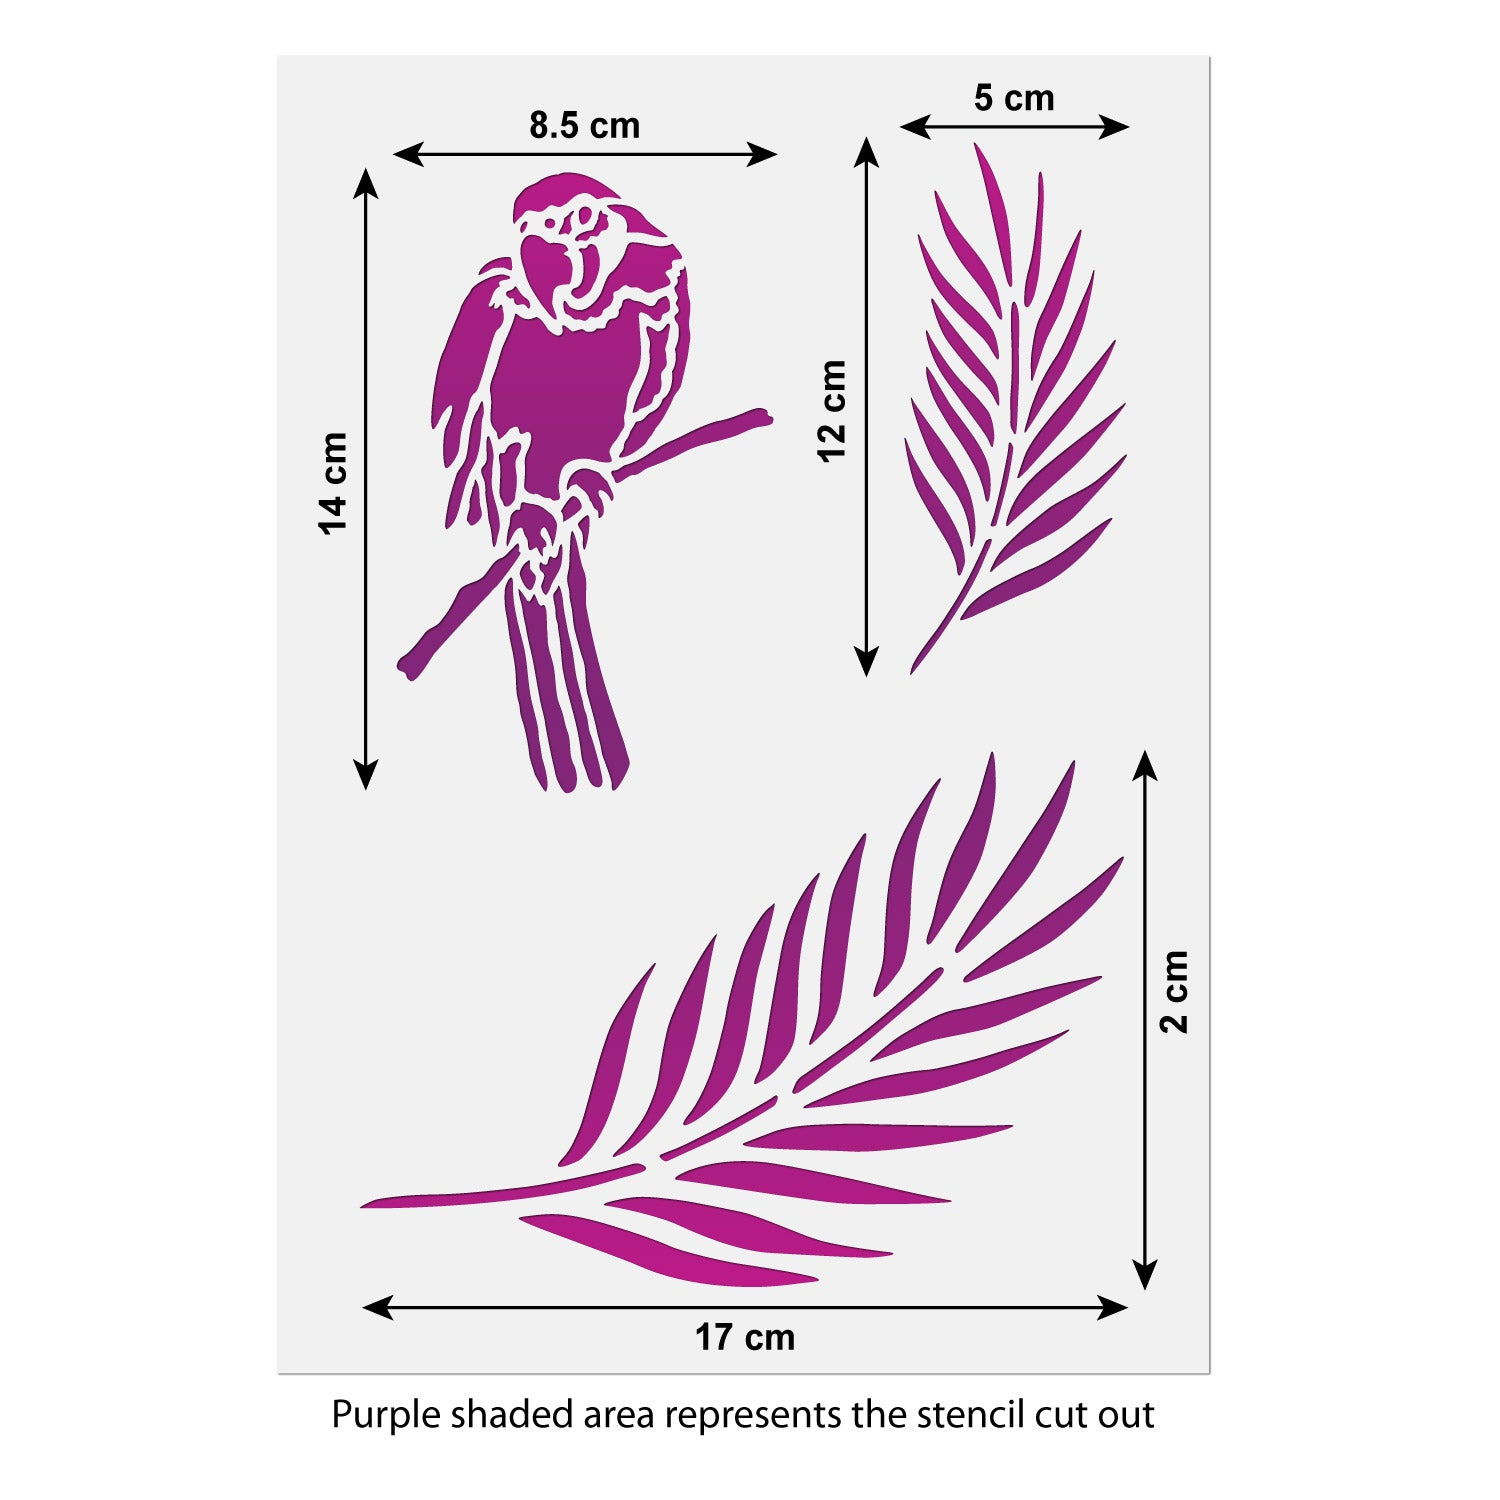 CraftStar Parrot and Palm Leaf Stencil size guide